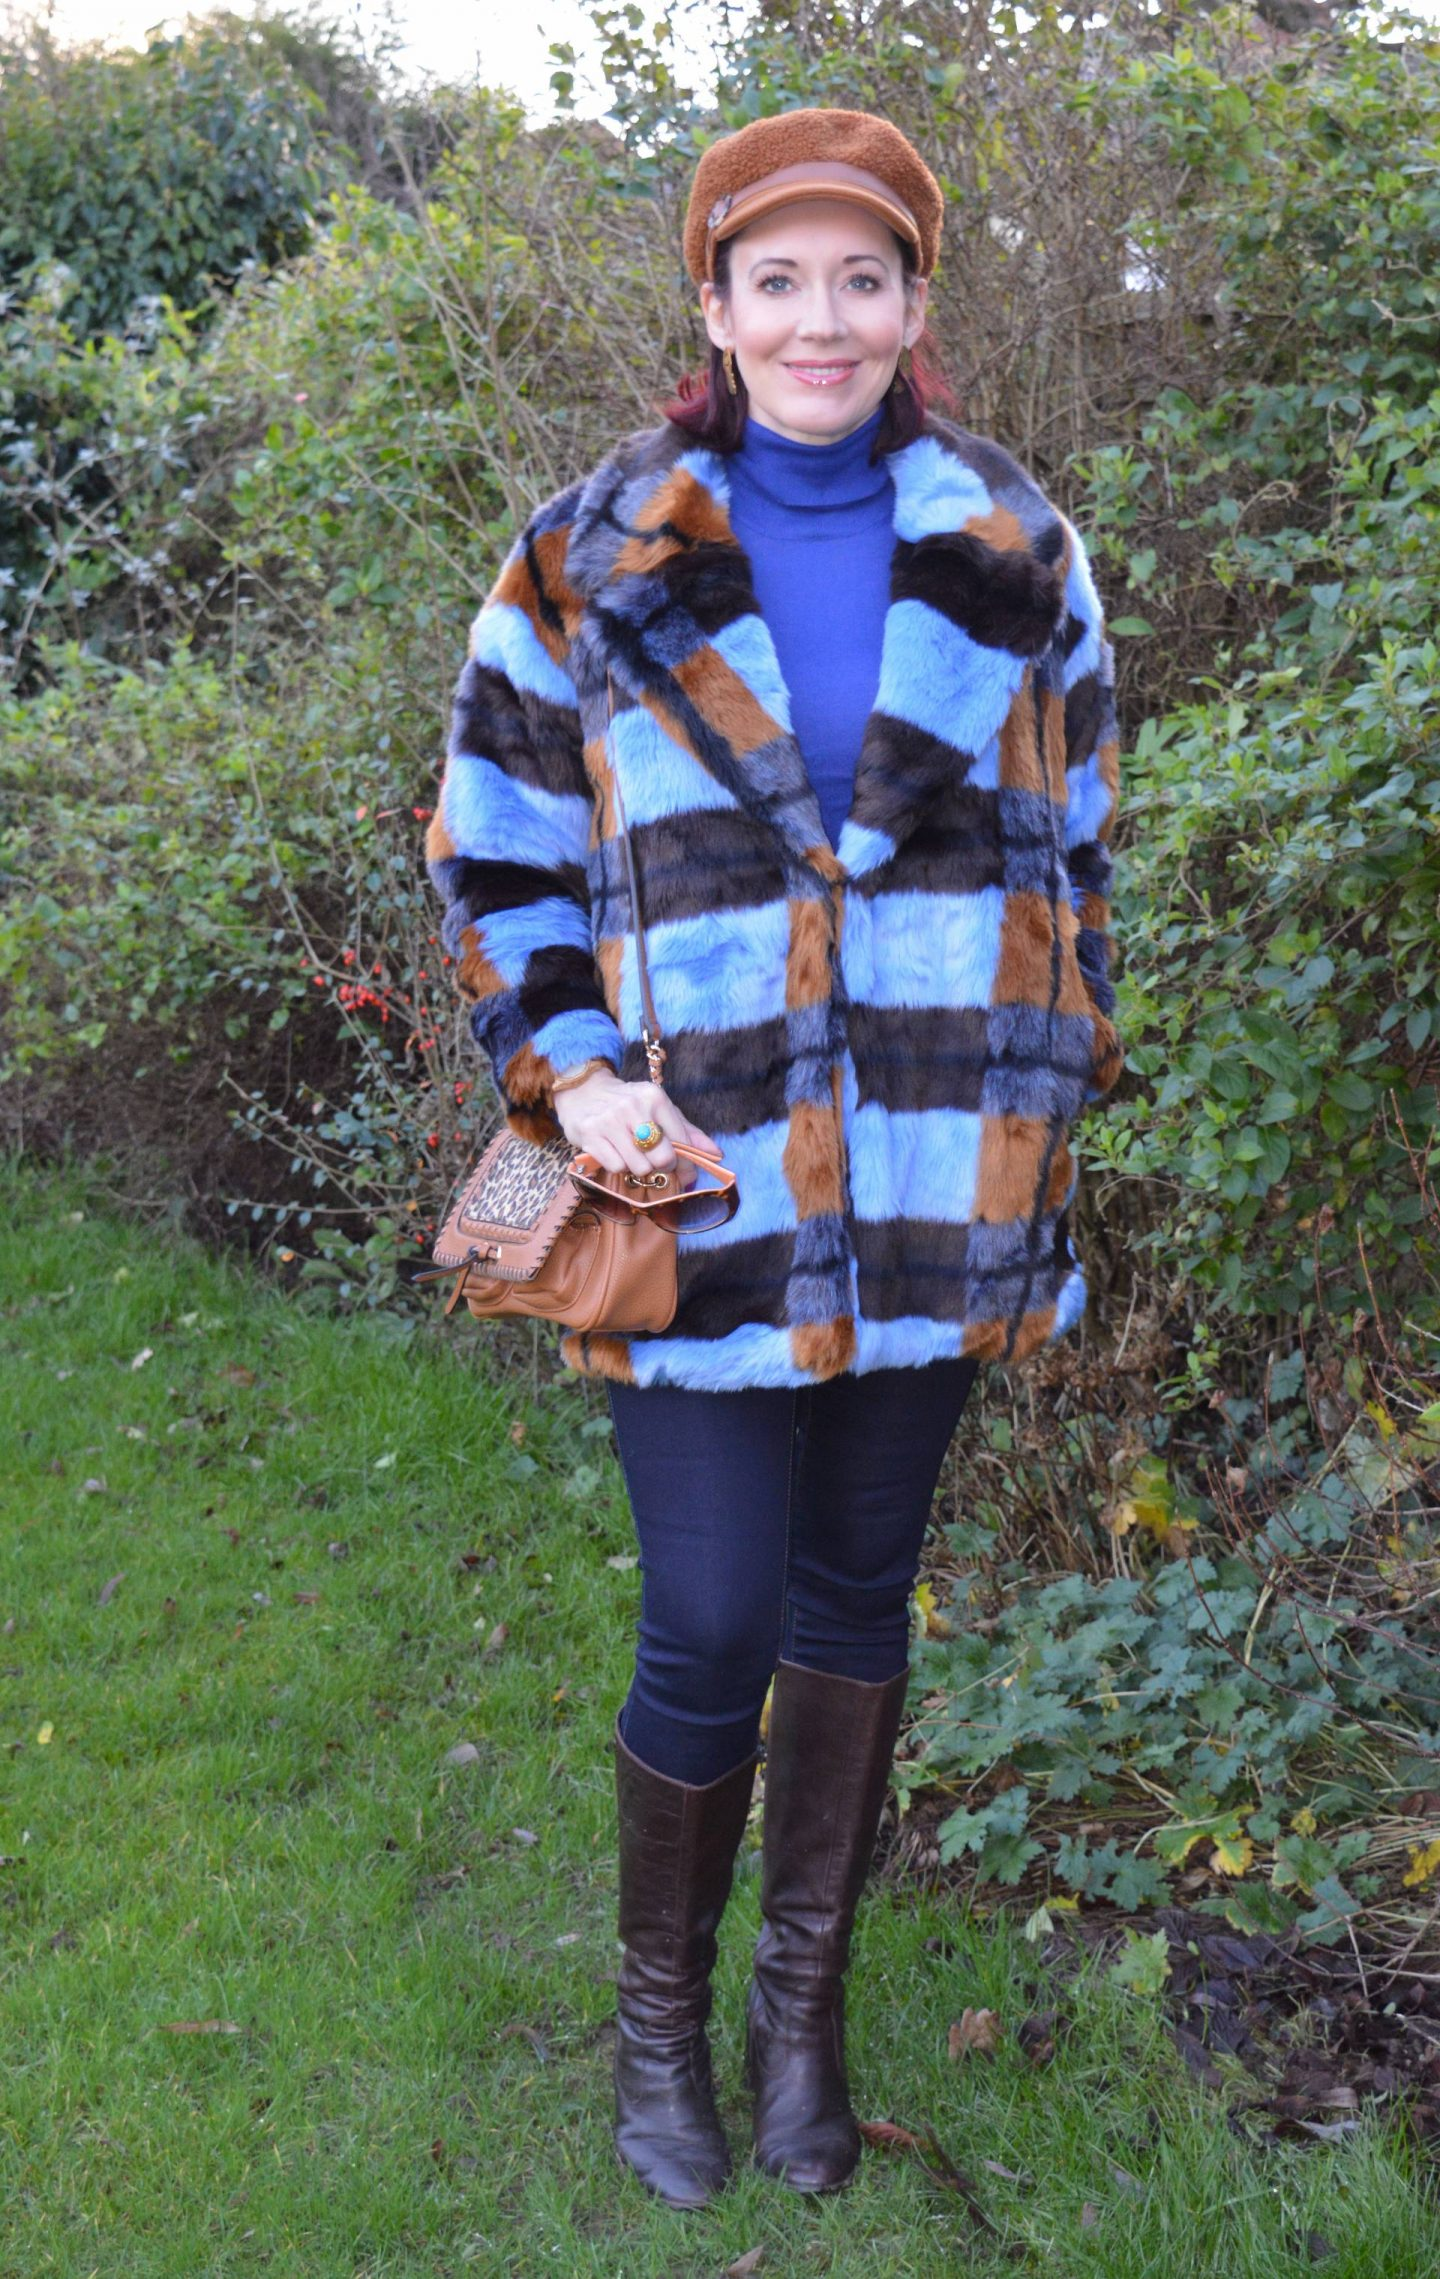 Asos faux fur coat, Scottage leopard print bag, Marks & Spencer brown baker boy hat